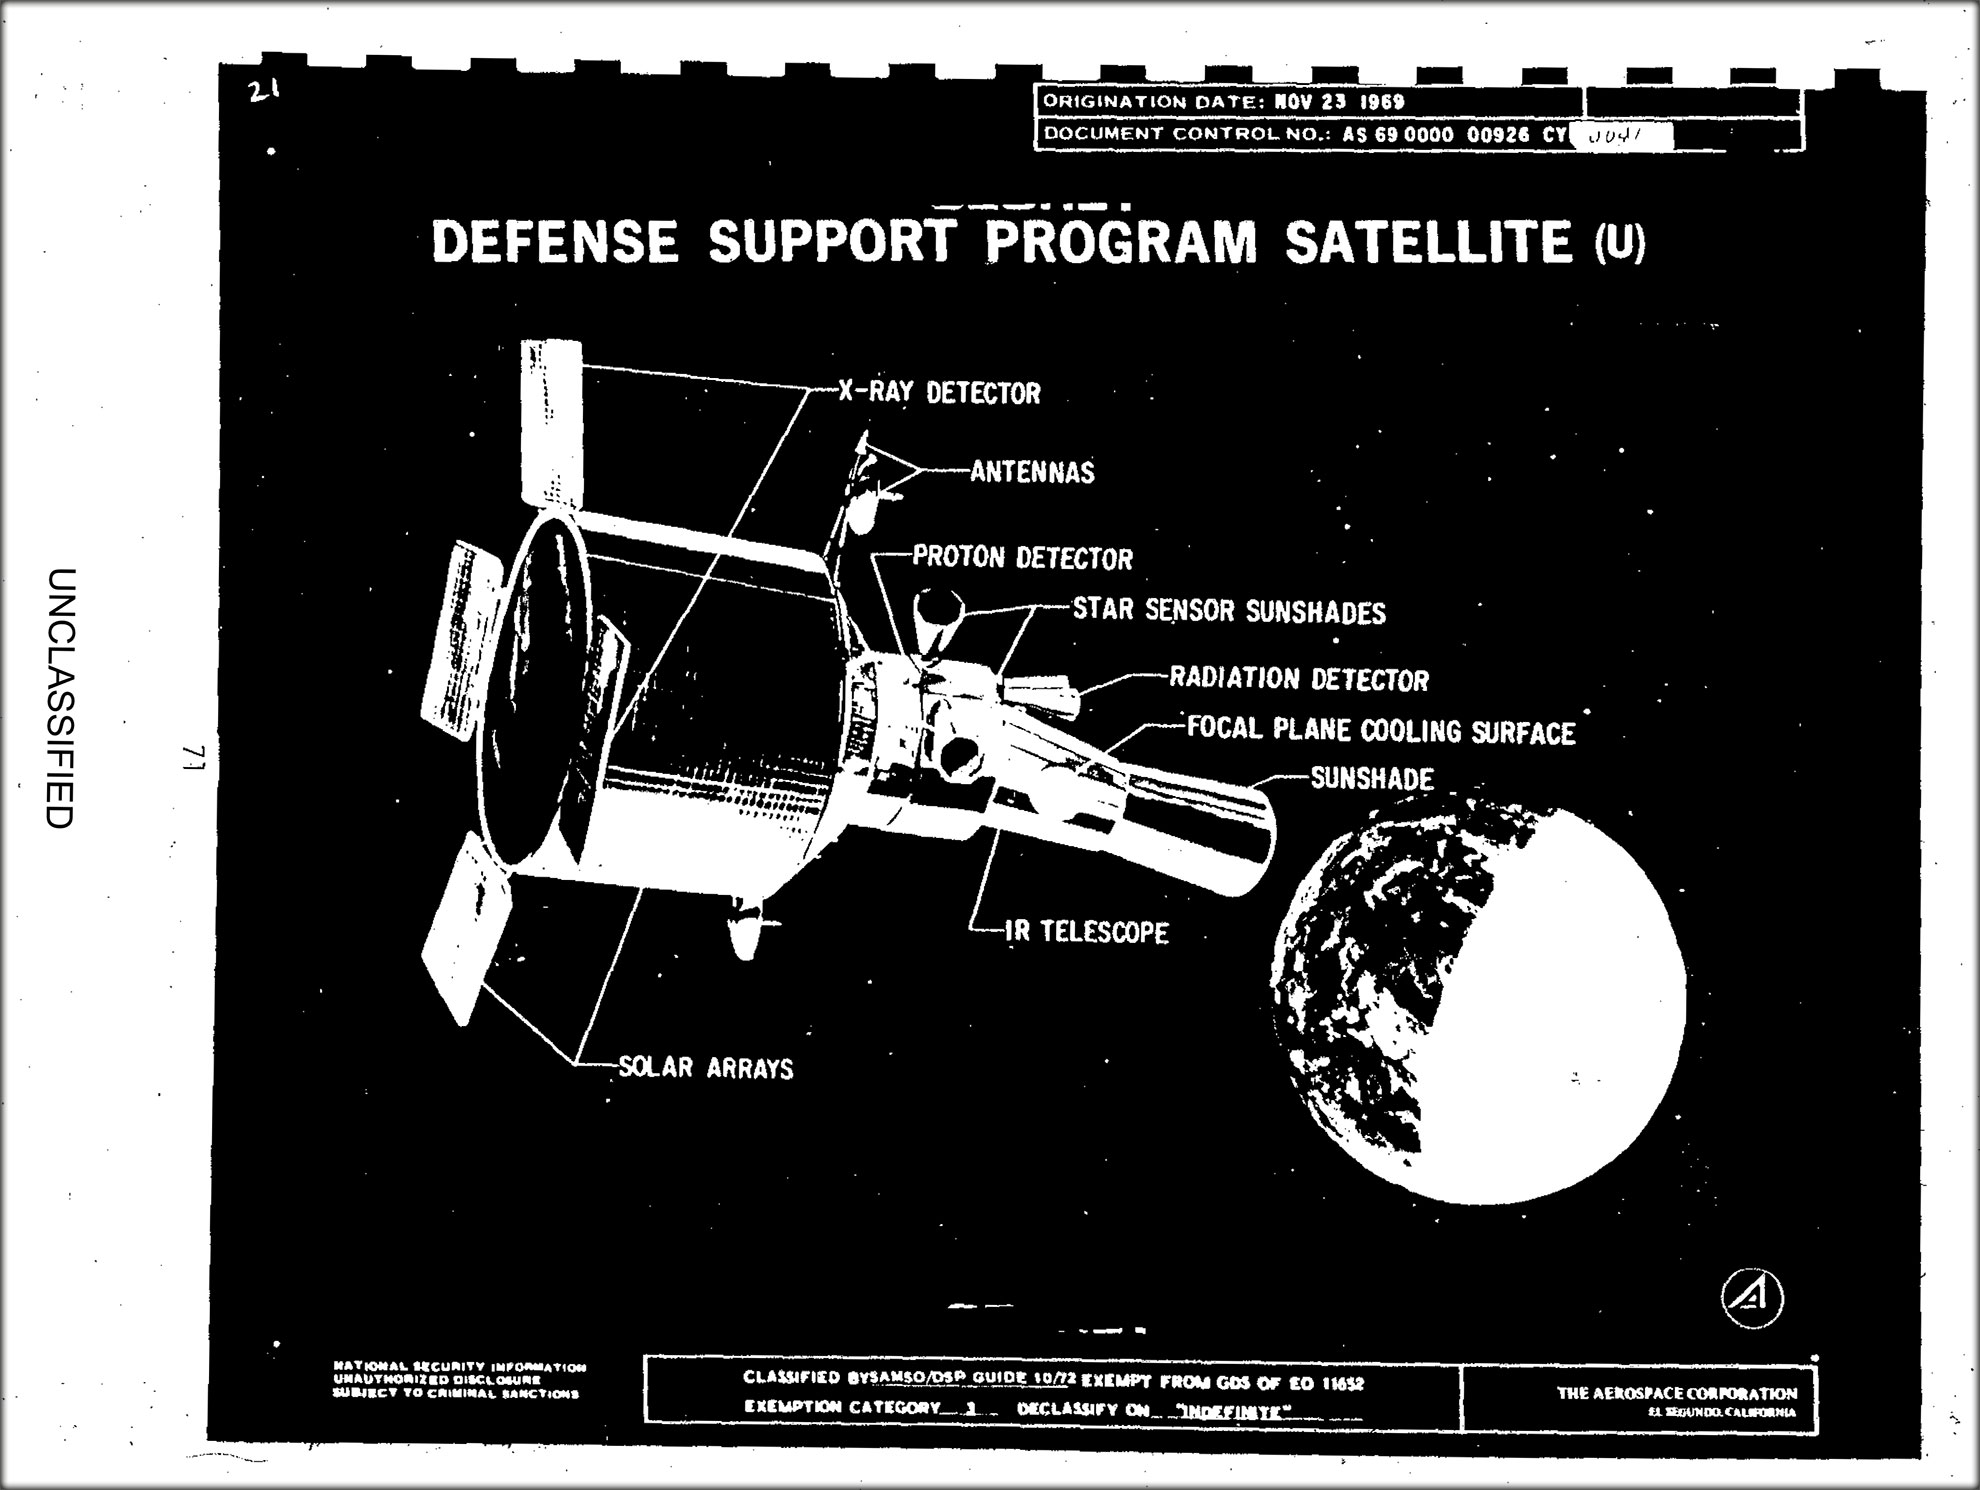 Drawing of Defense Support Program Satellite, including the infra-red telescope used to detect heat from missile launch plumes